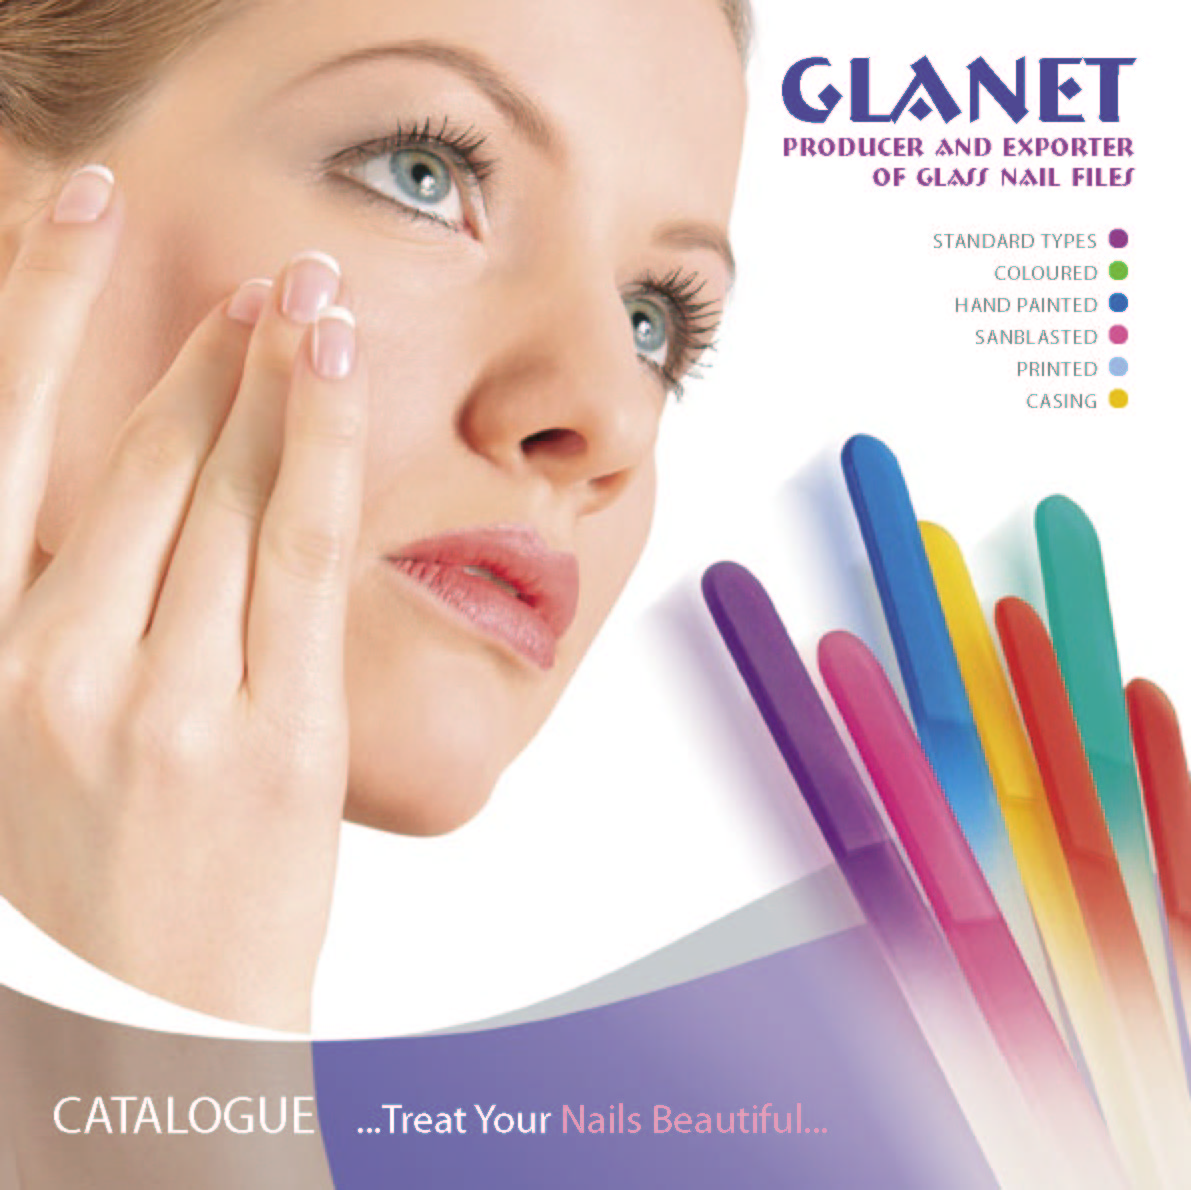 GLANET - glass nail file producer & exporter